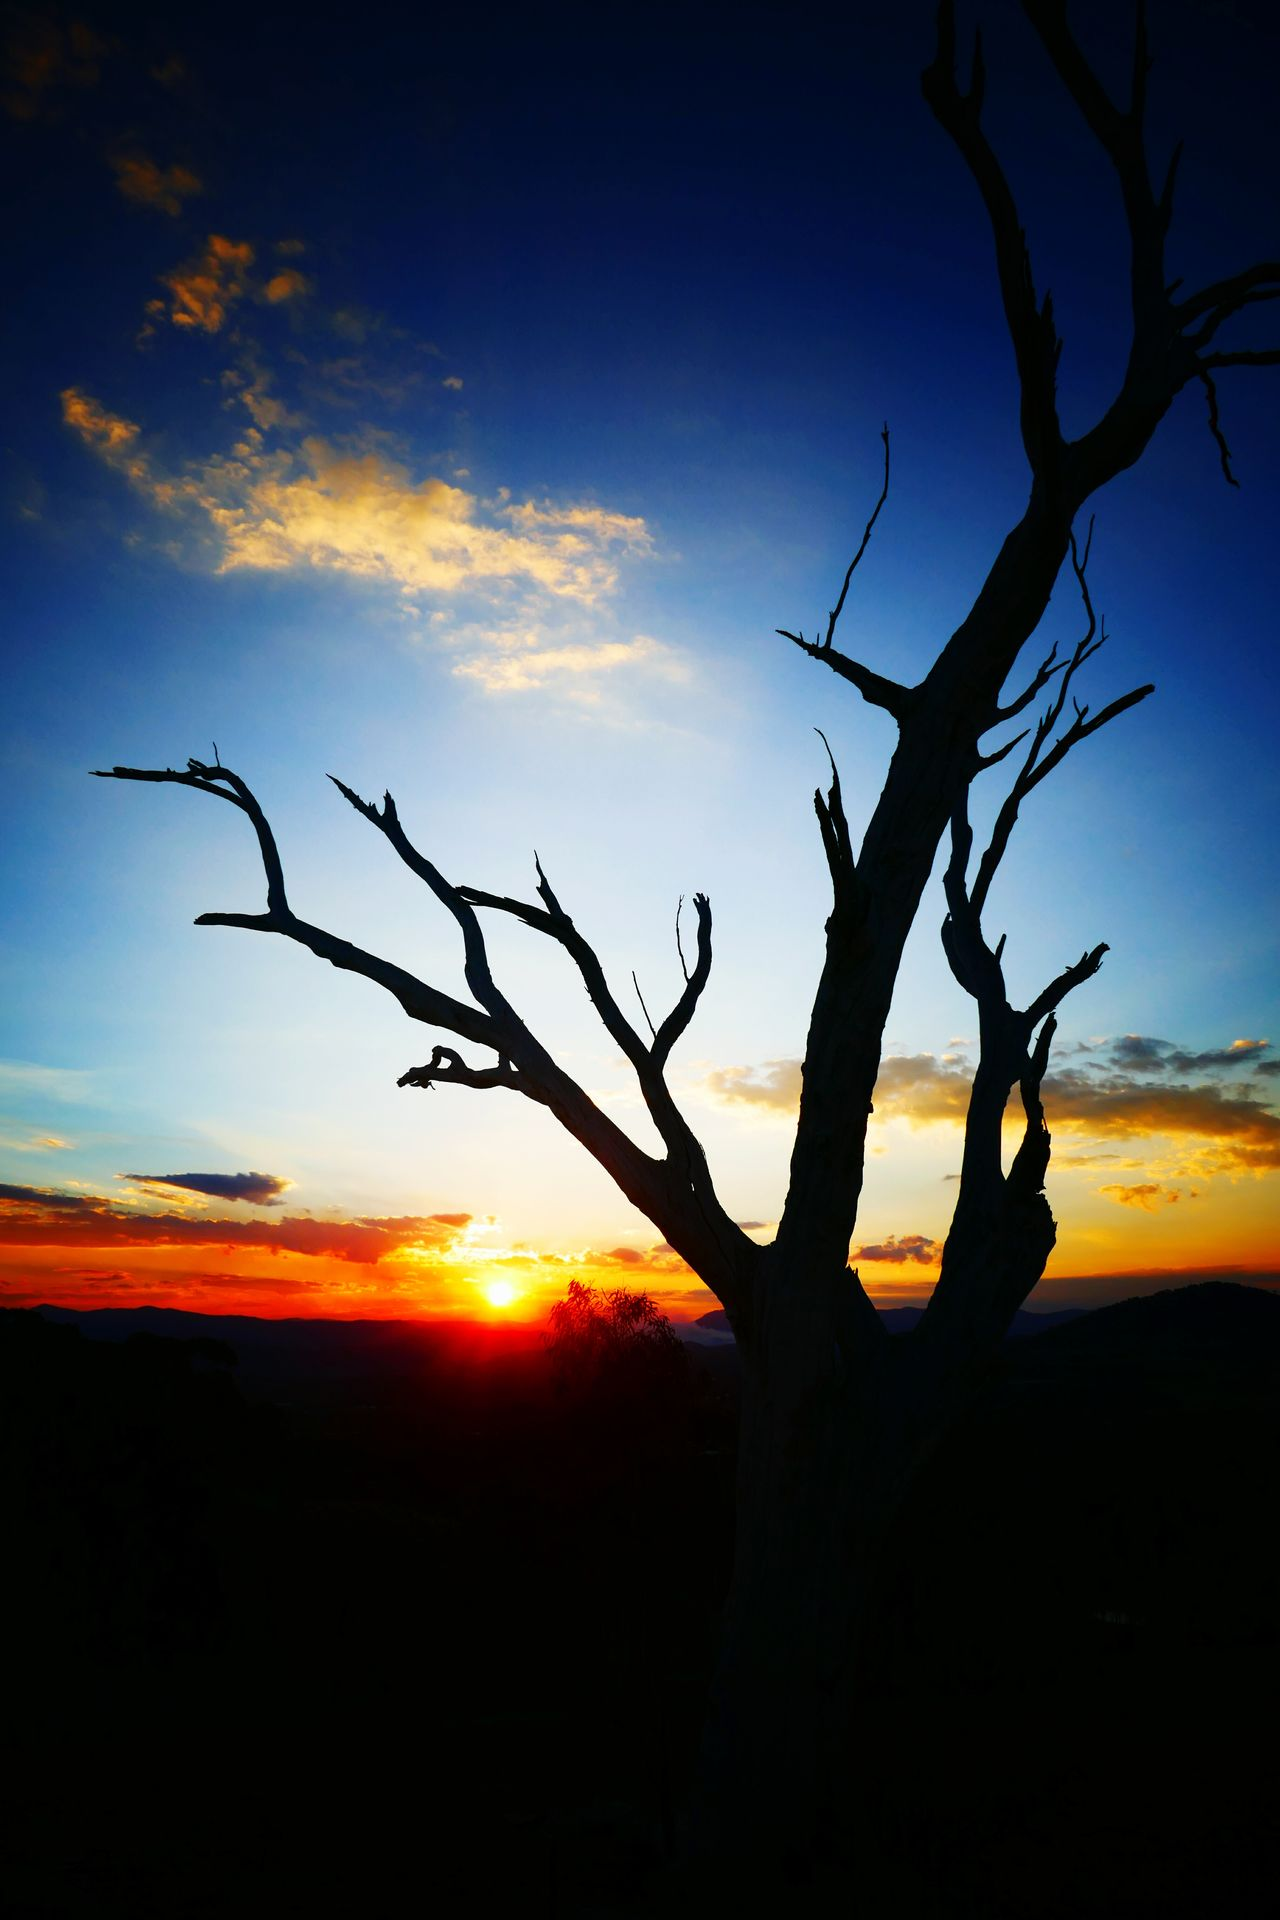 Sunset Tree Sky Nature Silhouette Branch Outdoors No People Welcome To Black EyeEmNewHere Cloud - Sky Low Angle View Australian Landscape Silhouette Origional Photo Backgrounds Colours In The Sky Colours Of Nature Tree Australia Full Frame This Is Where I Live Australian Bush Art Is Everywhere The Great Outdoors - 2017 EyeEm Awards